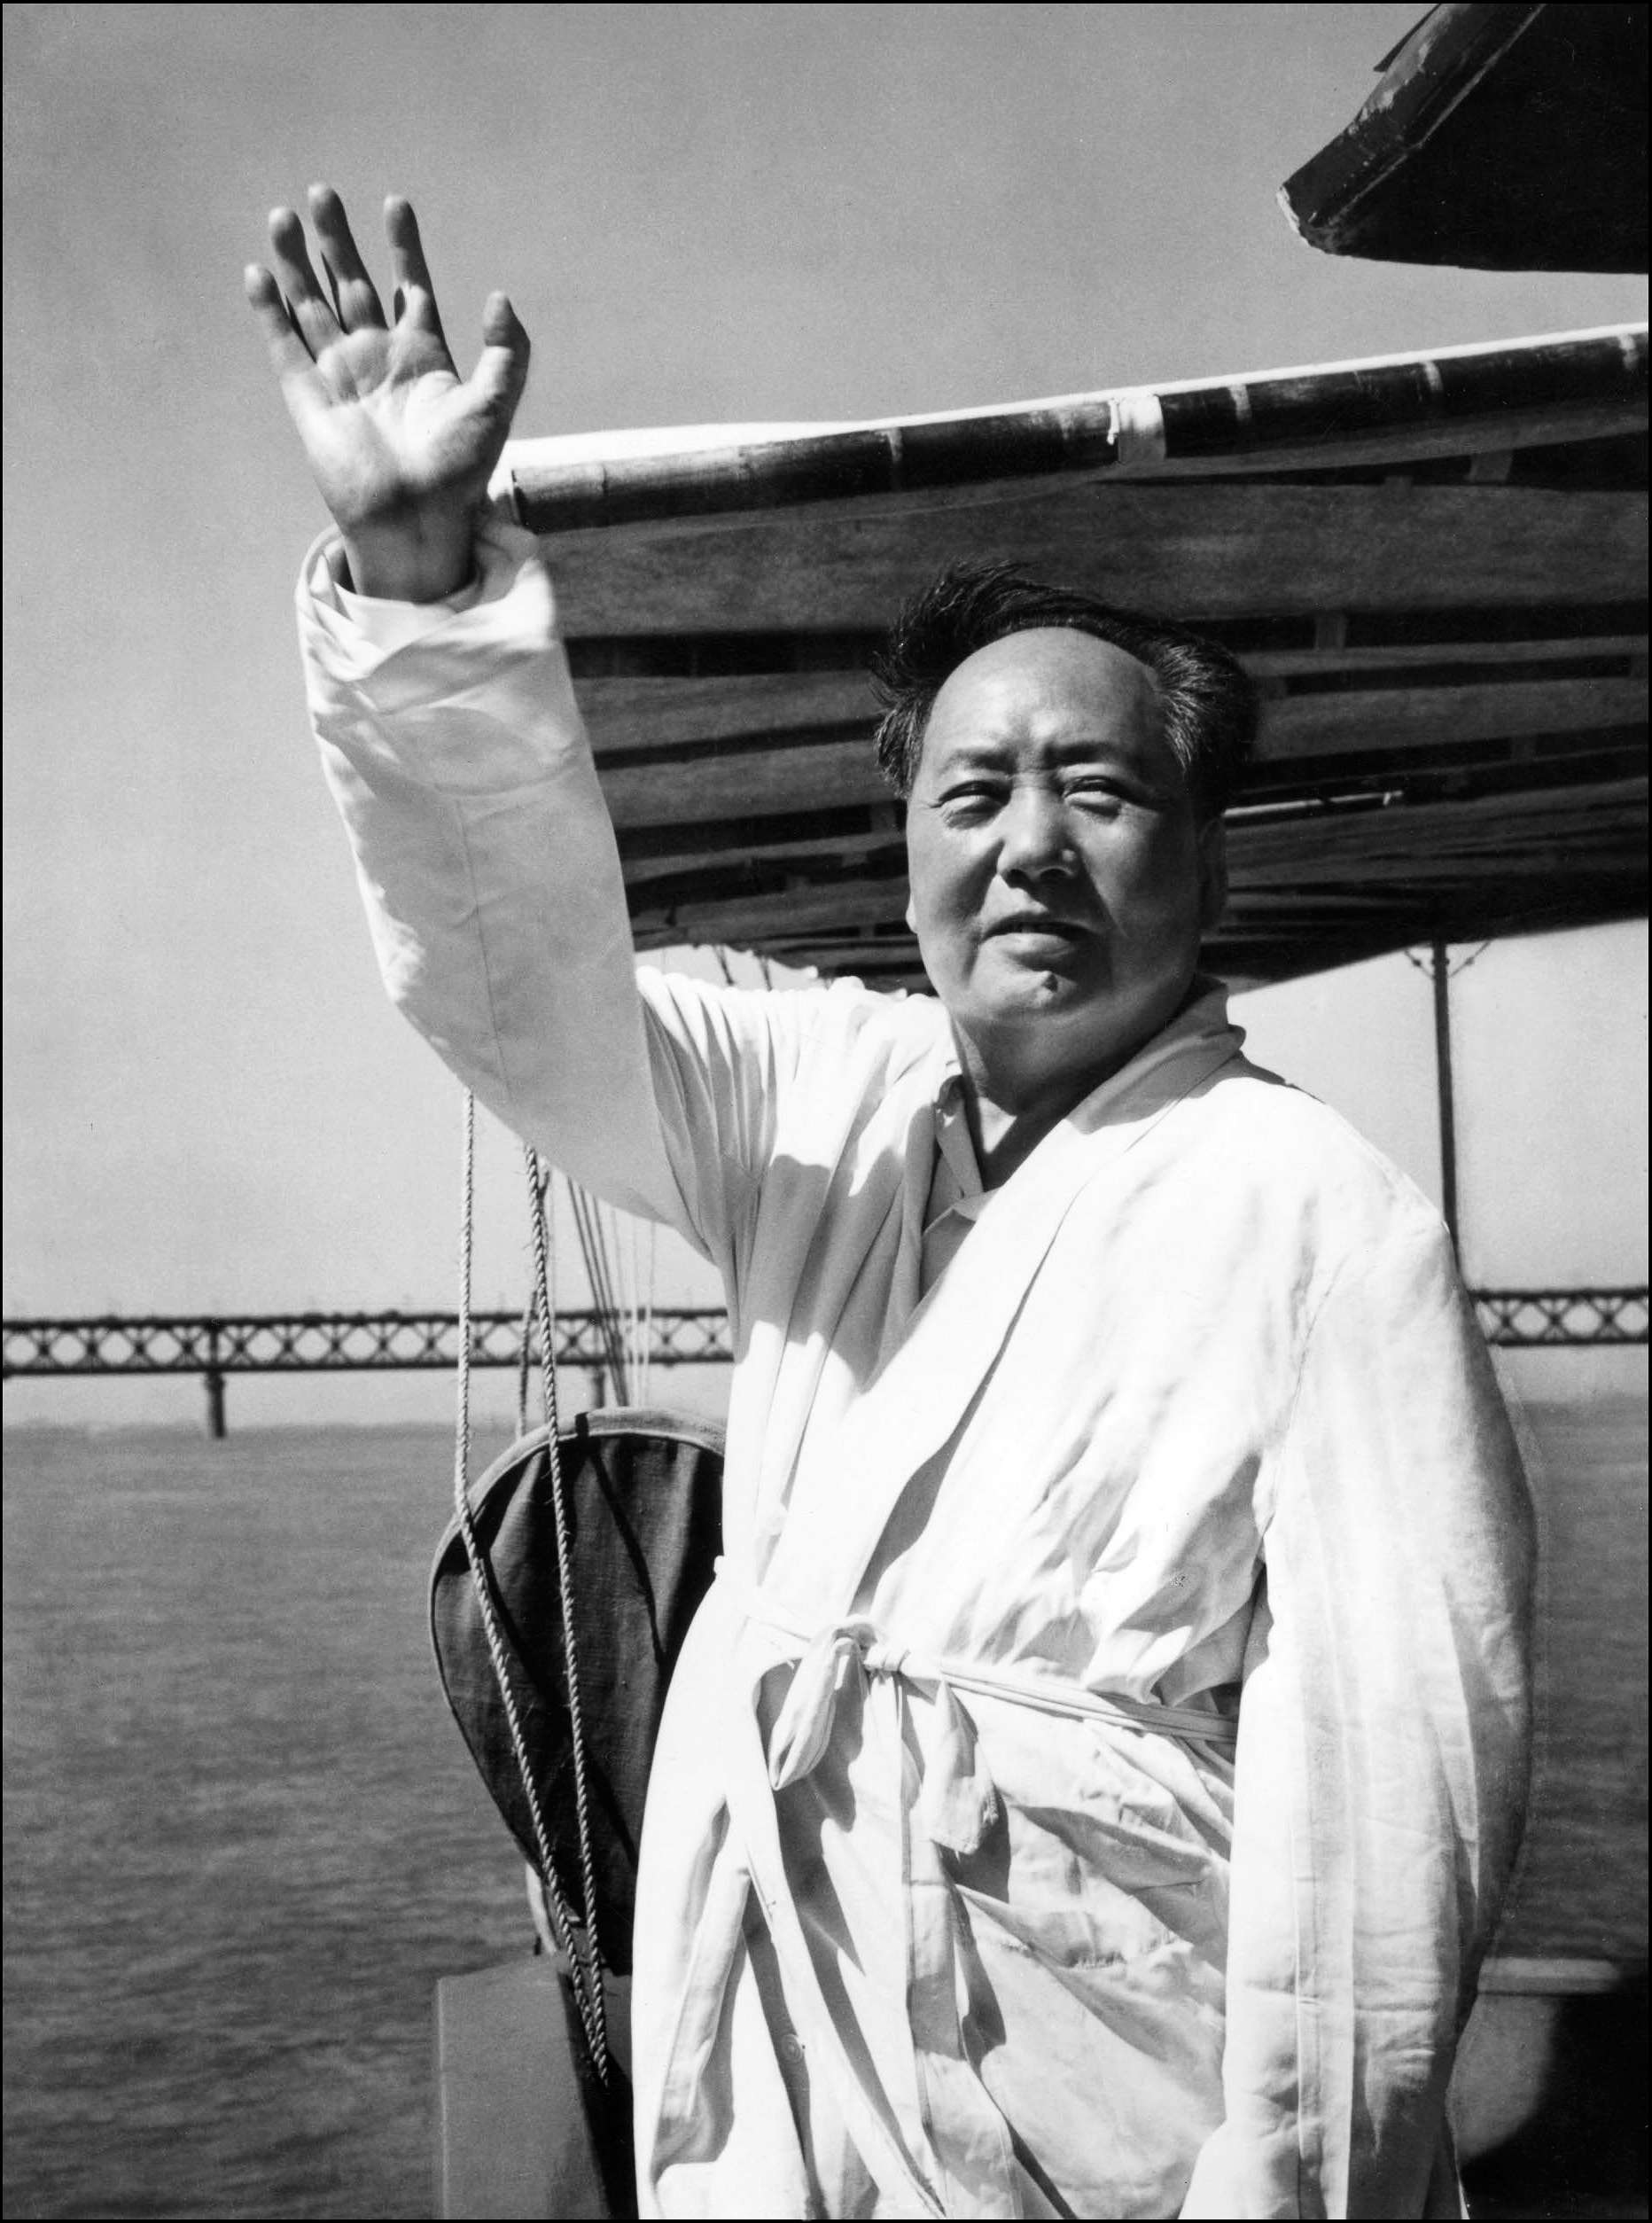 Image result for picture of chairman mao swimming the Yangtze""